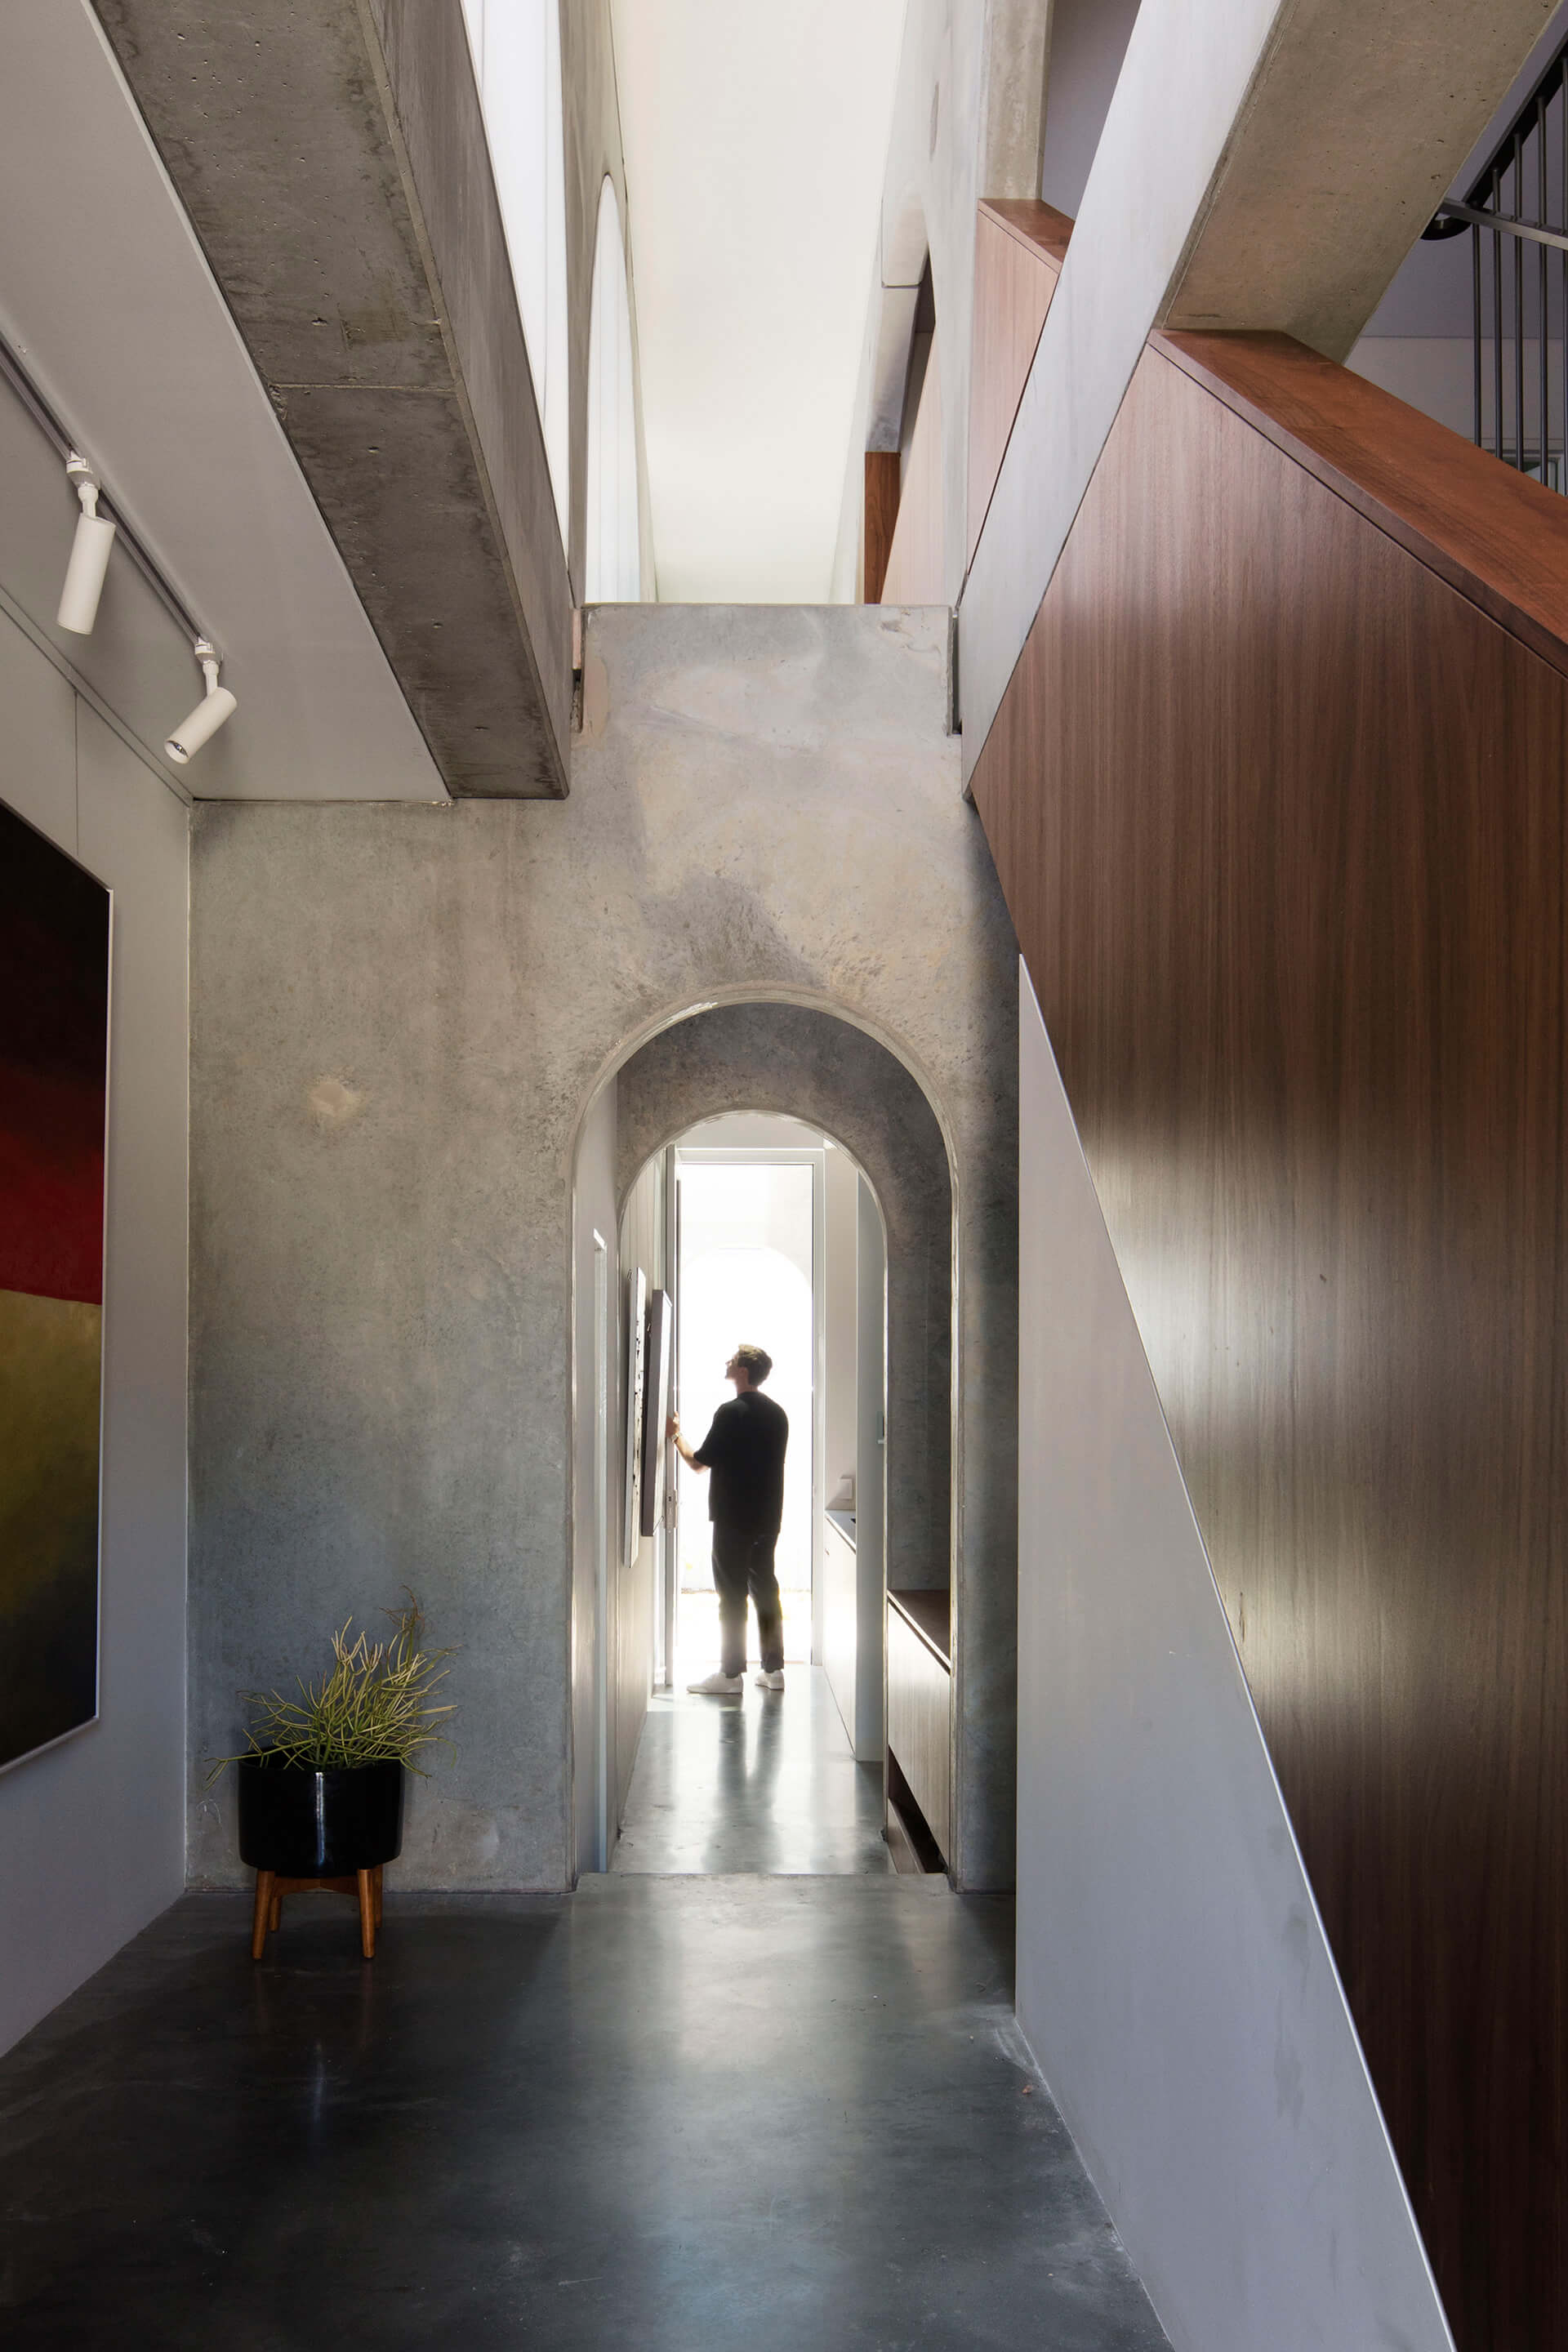 Pedestrian arches pave way for uninterrupted perpendicular travel | North Perth House by Nic Brunsdon | STIRworld